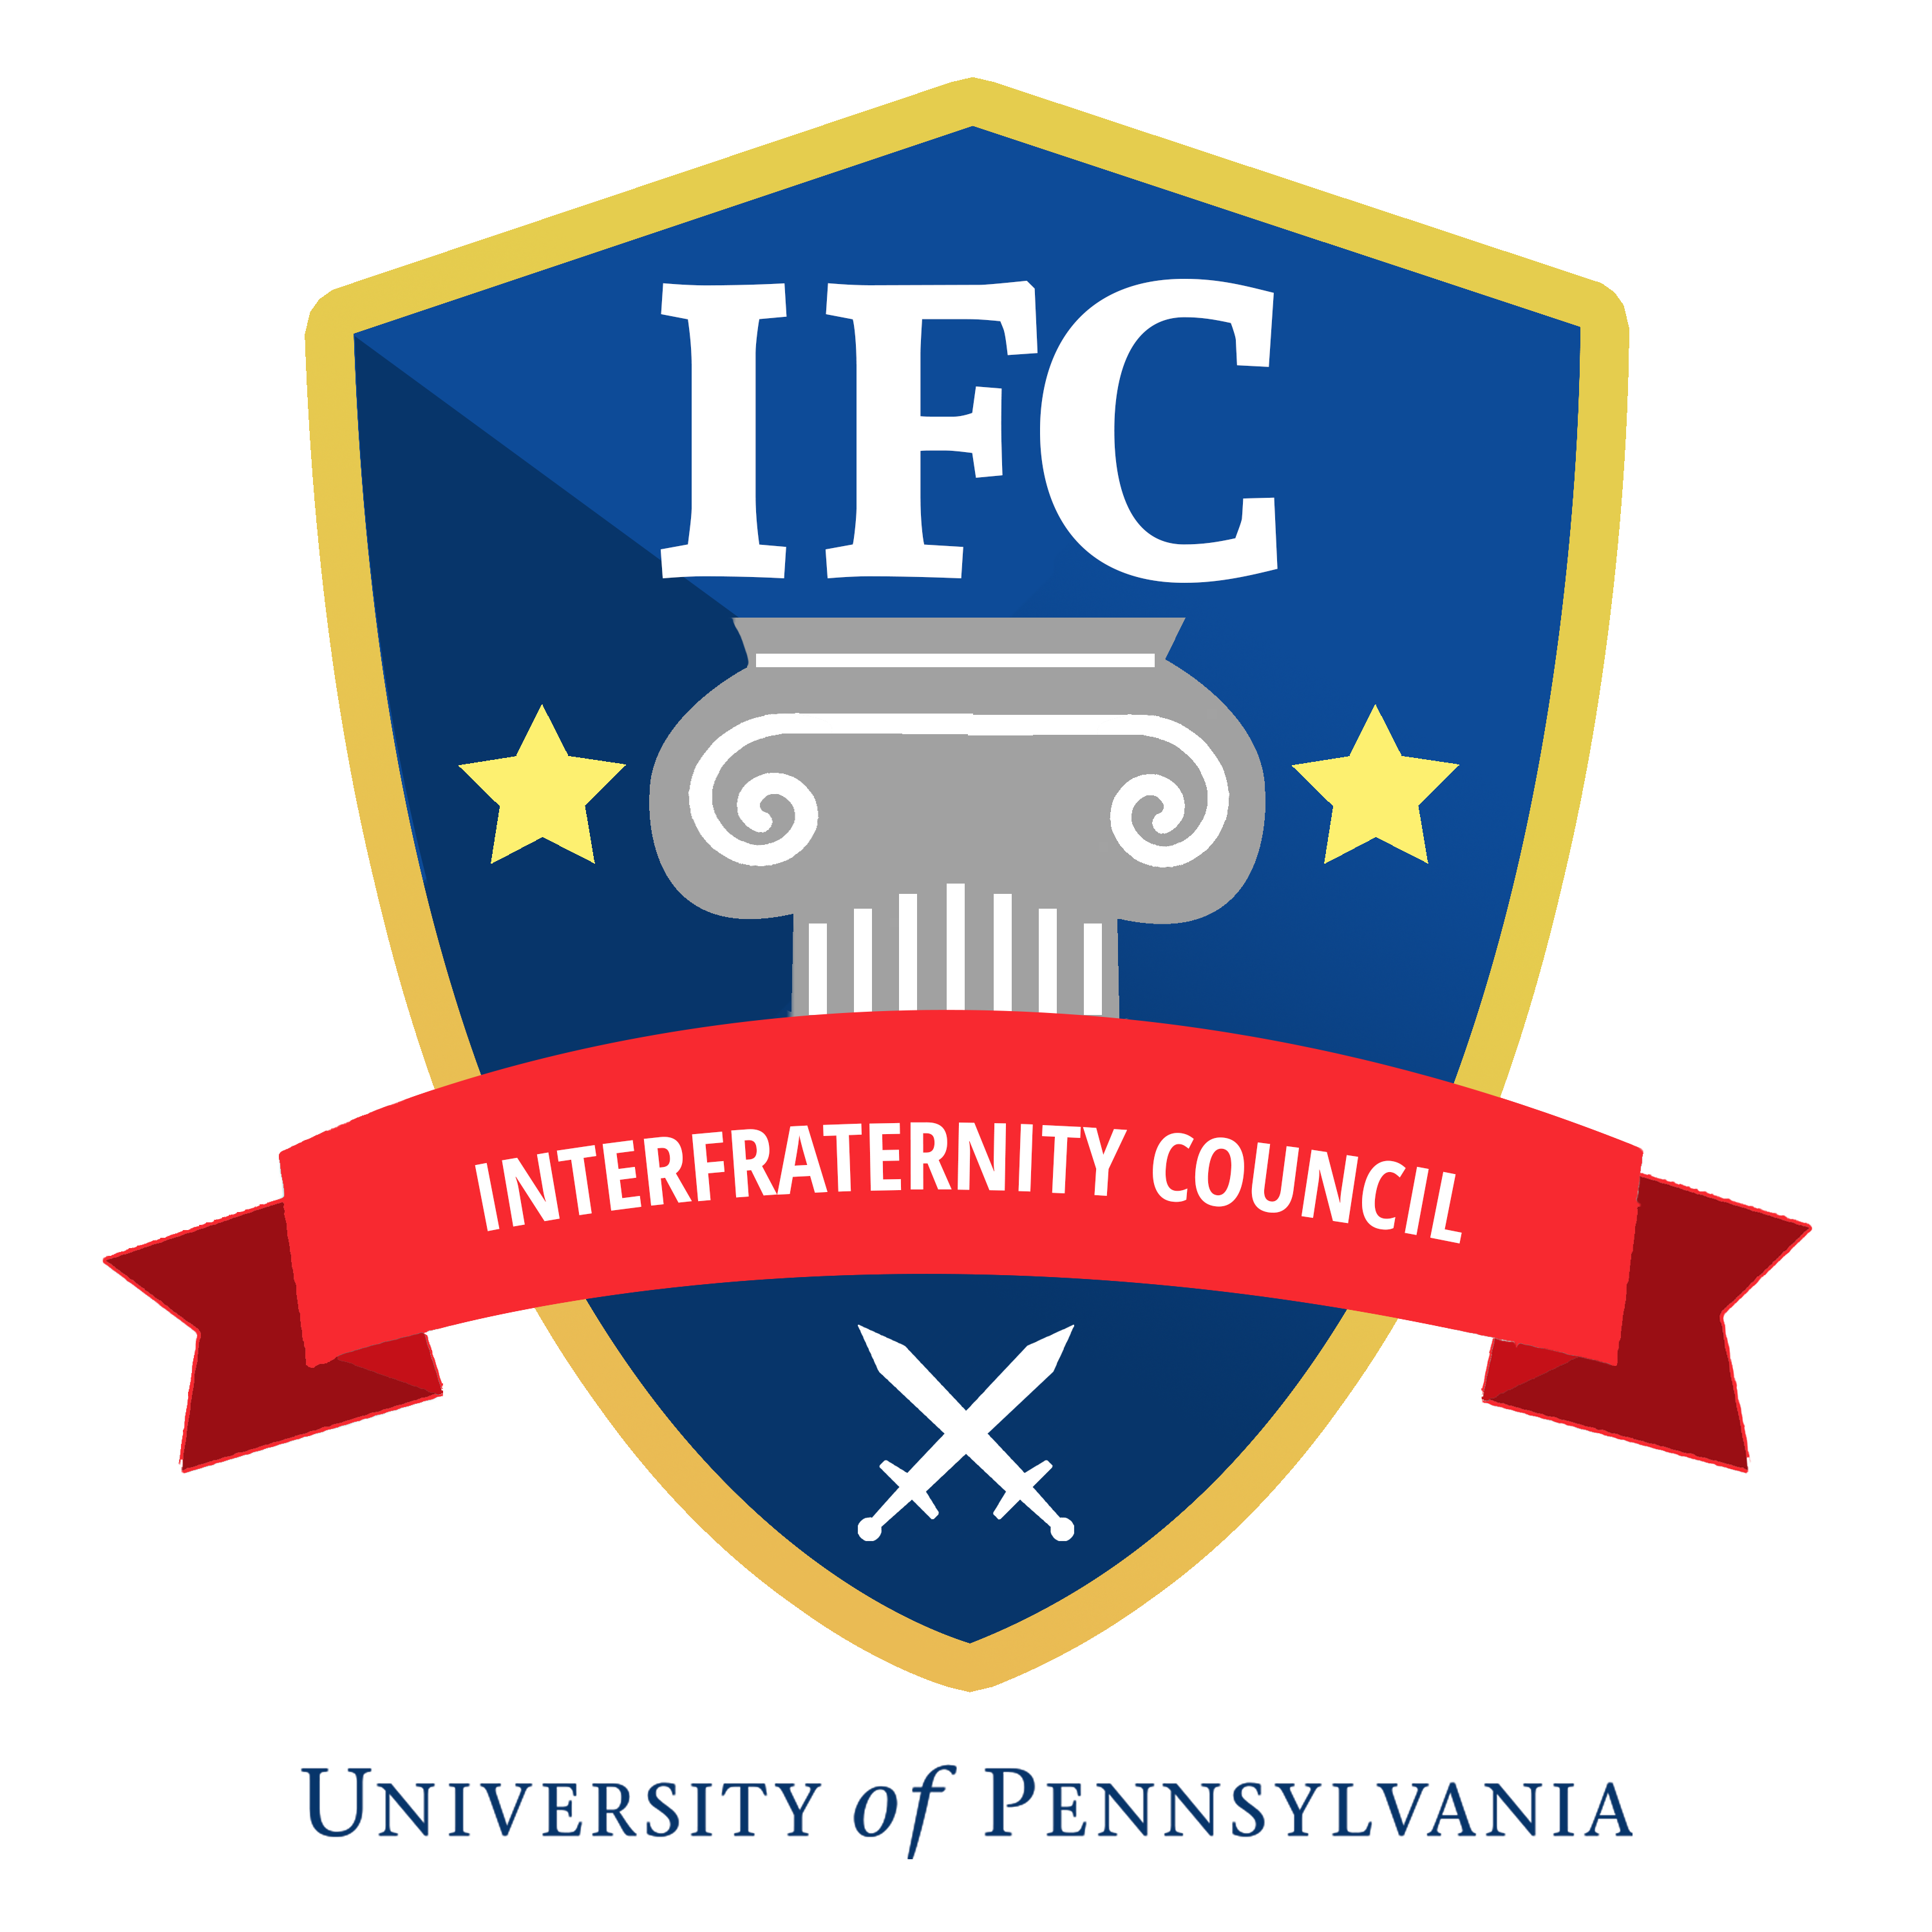 University of Pennsylvania IFC